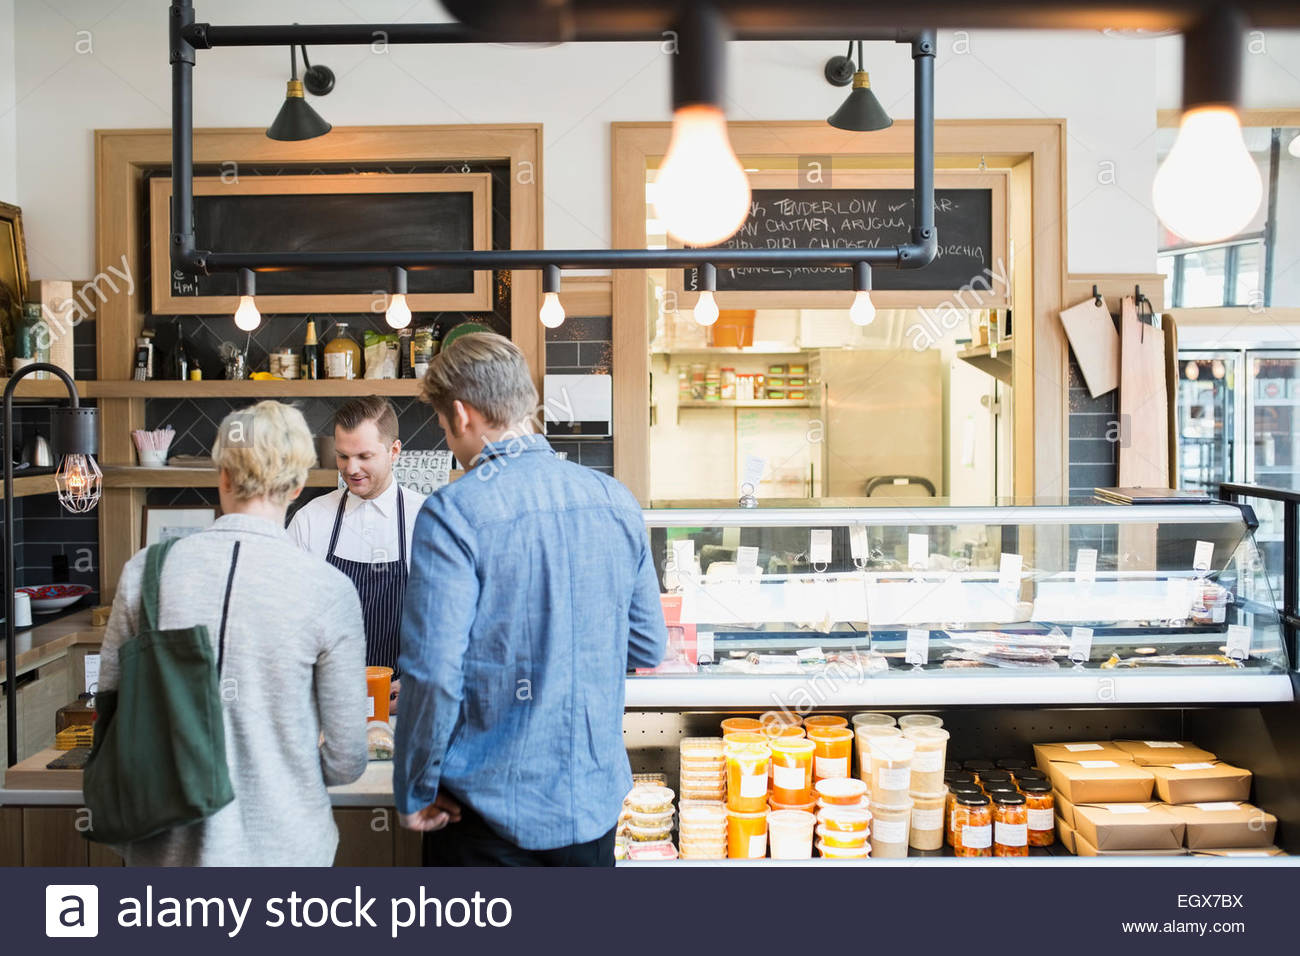 Market worker assisting customers at front counter - Stock Image